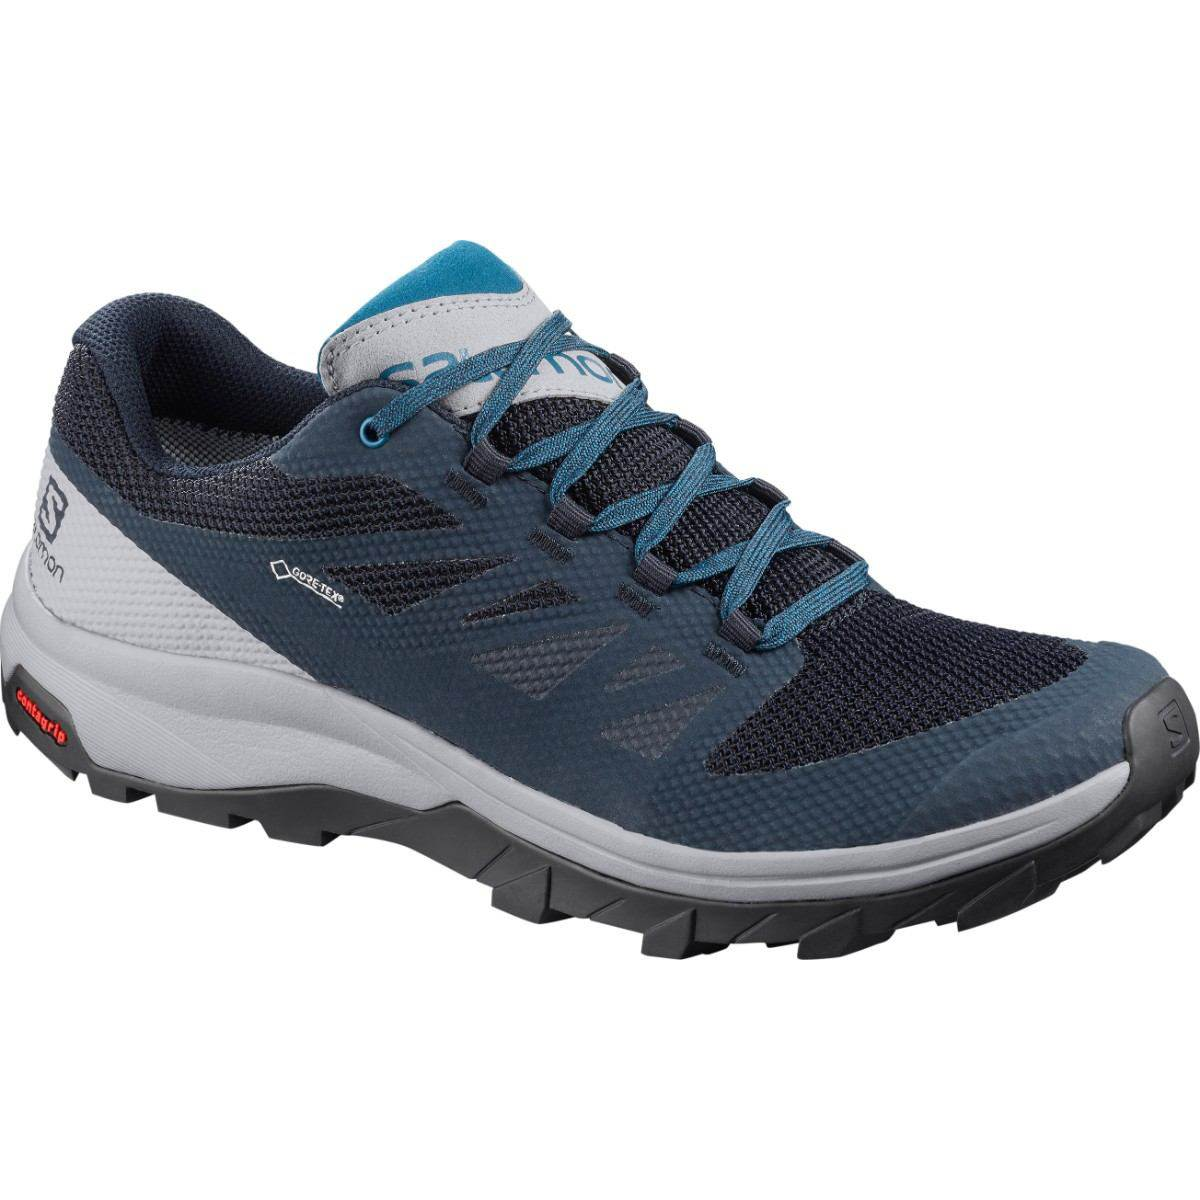 Salomon Ghete drumetie Salomon OUTLINE GTX - Albastru